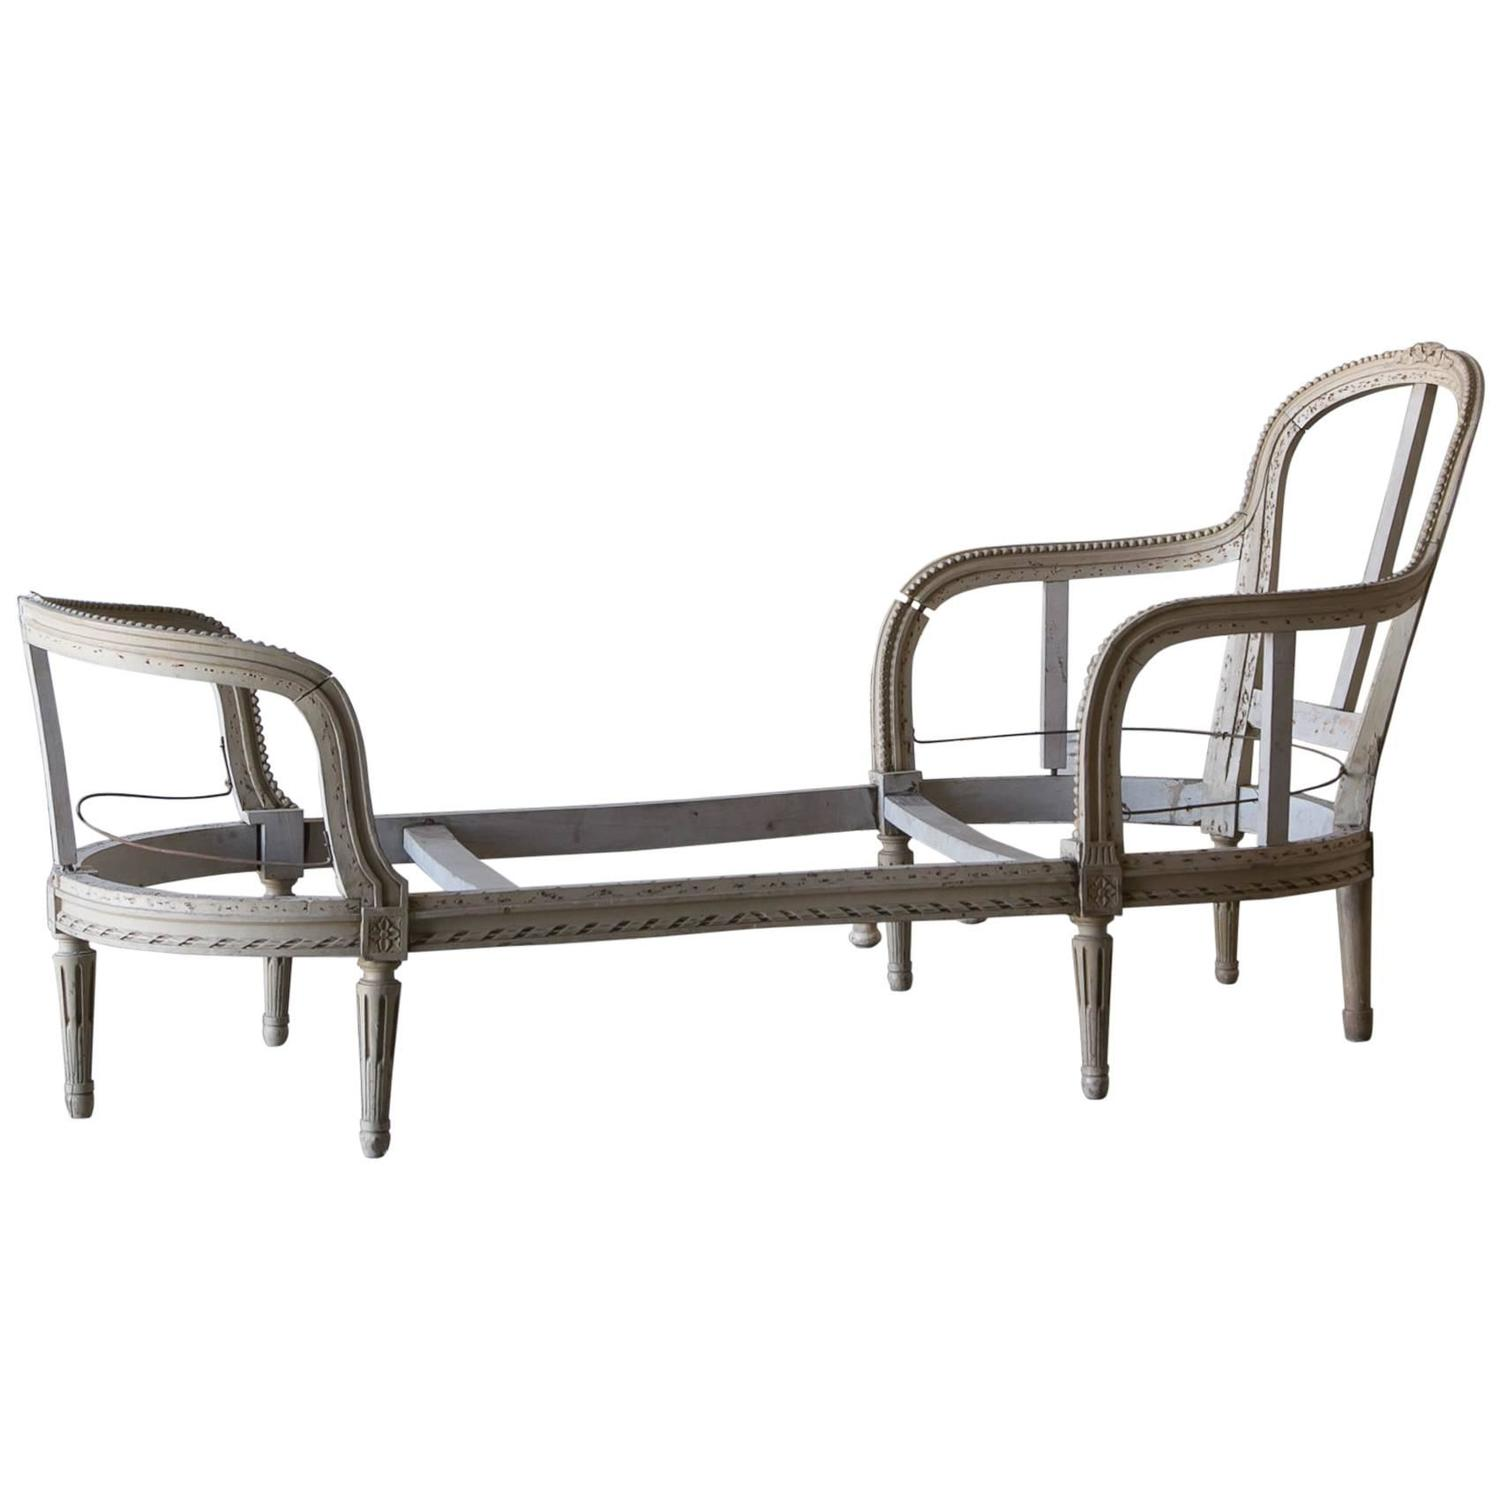 Antique chaise lounge circa 1890 at 1stdibs for Antique chaise lounges